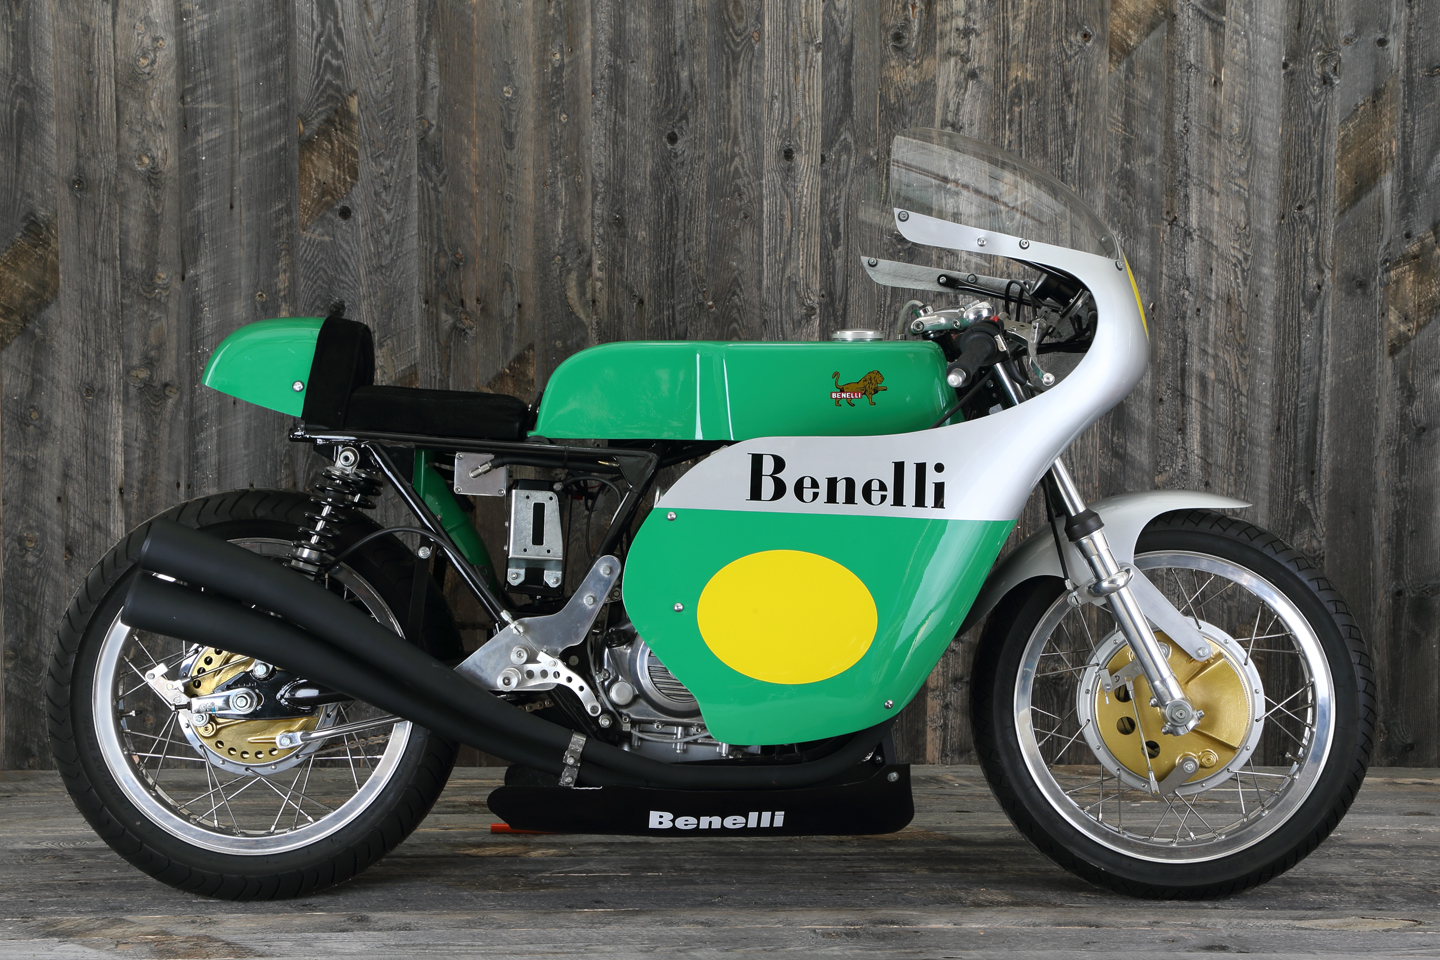 1971, Benelli 500 GP, Pasolini Replica